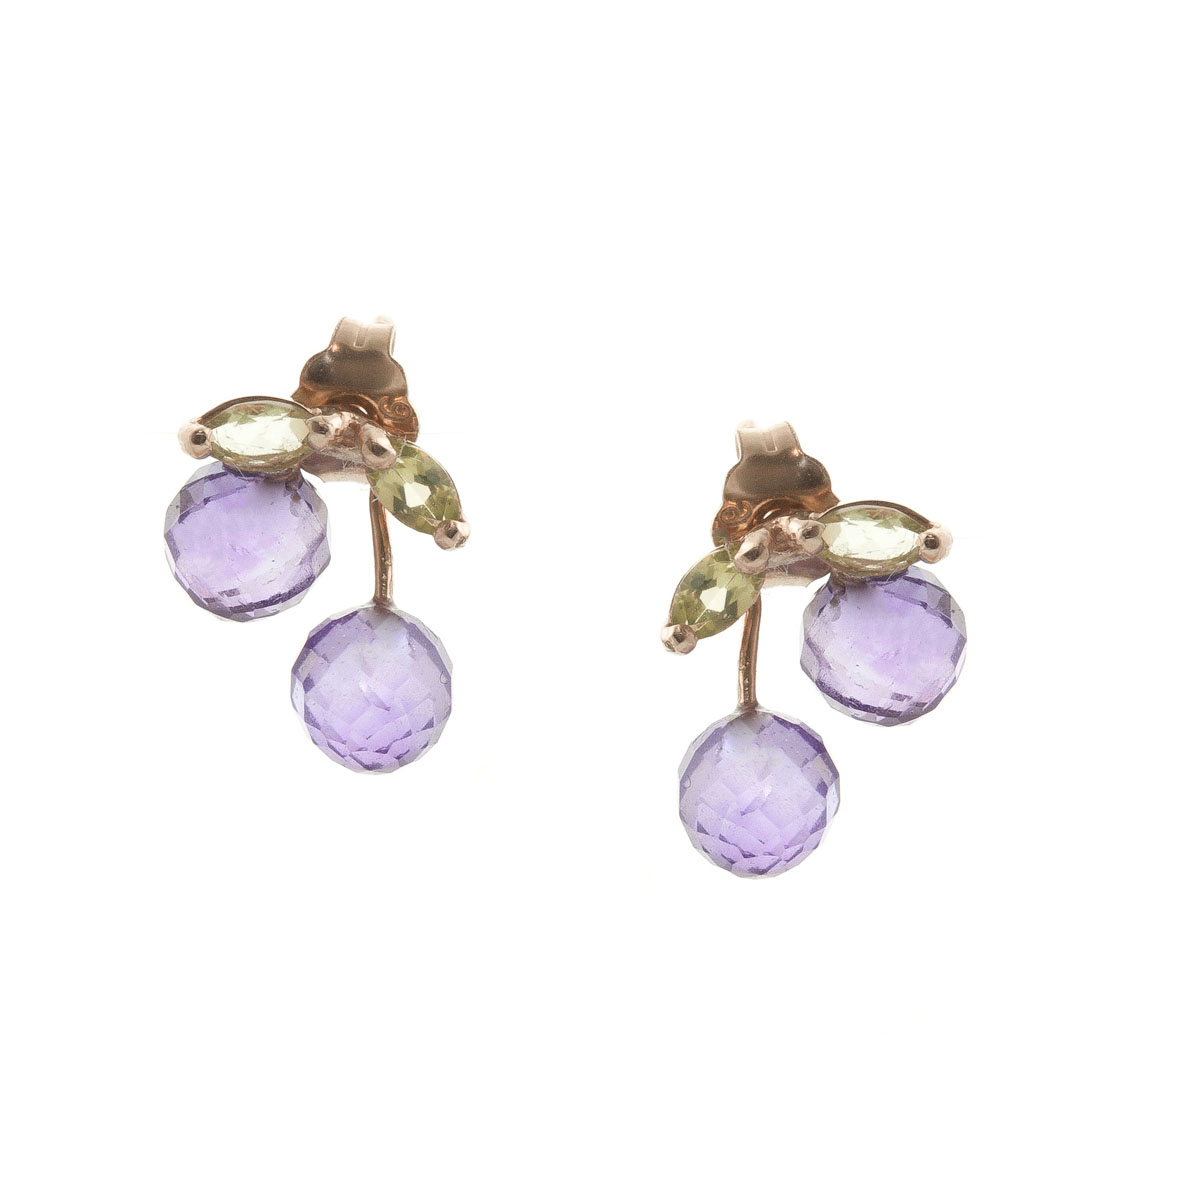 Amethyst & Peridot Cherry Drop Stud Earrings in 9ct Rose Gold